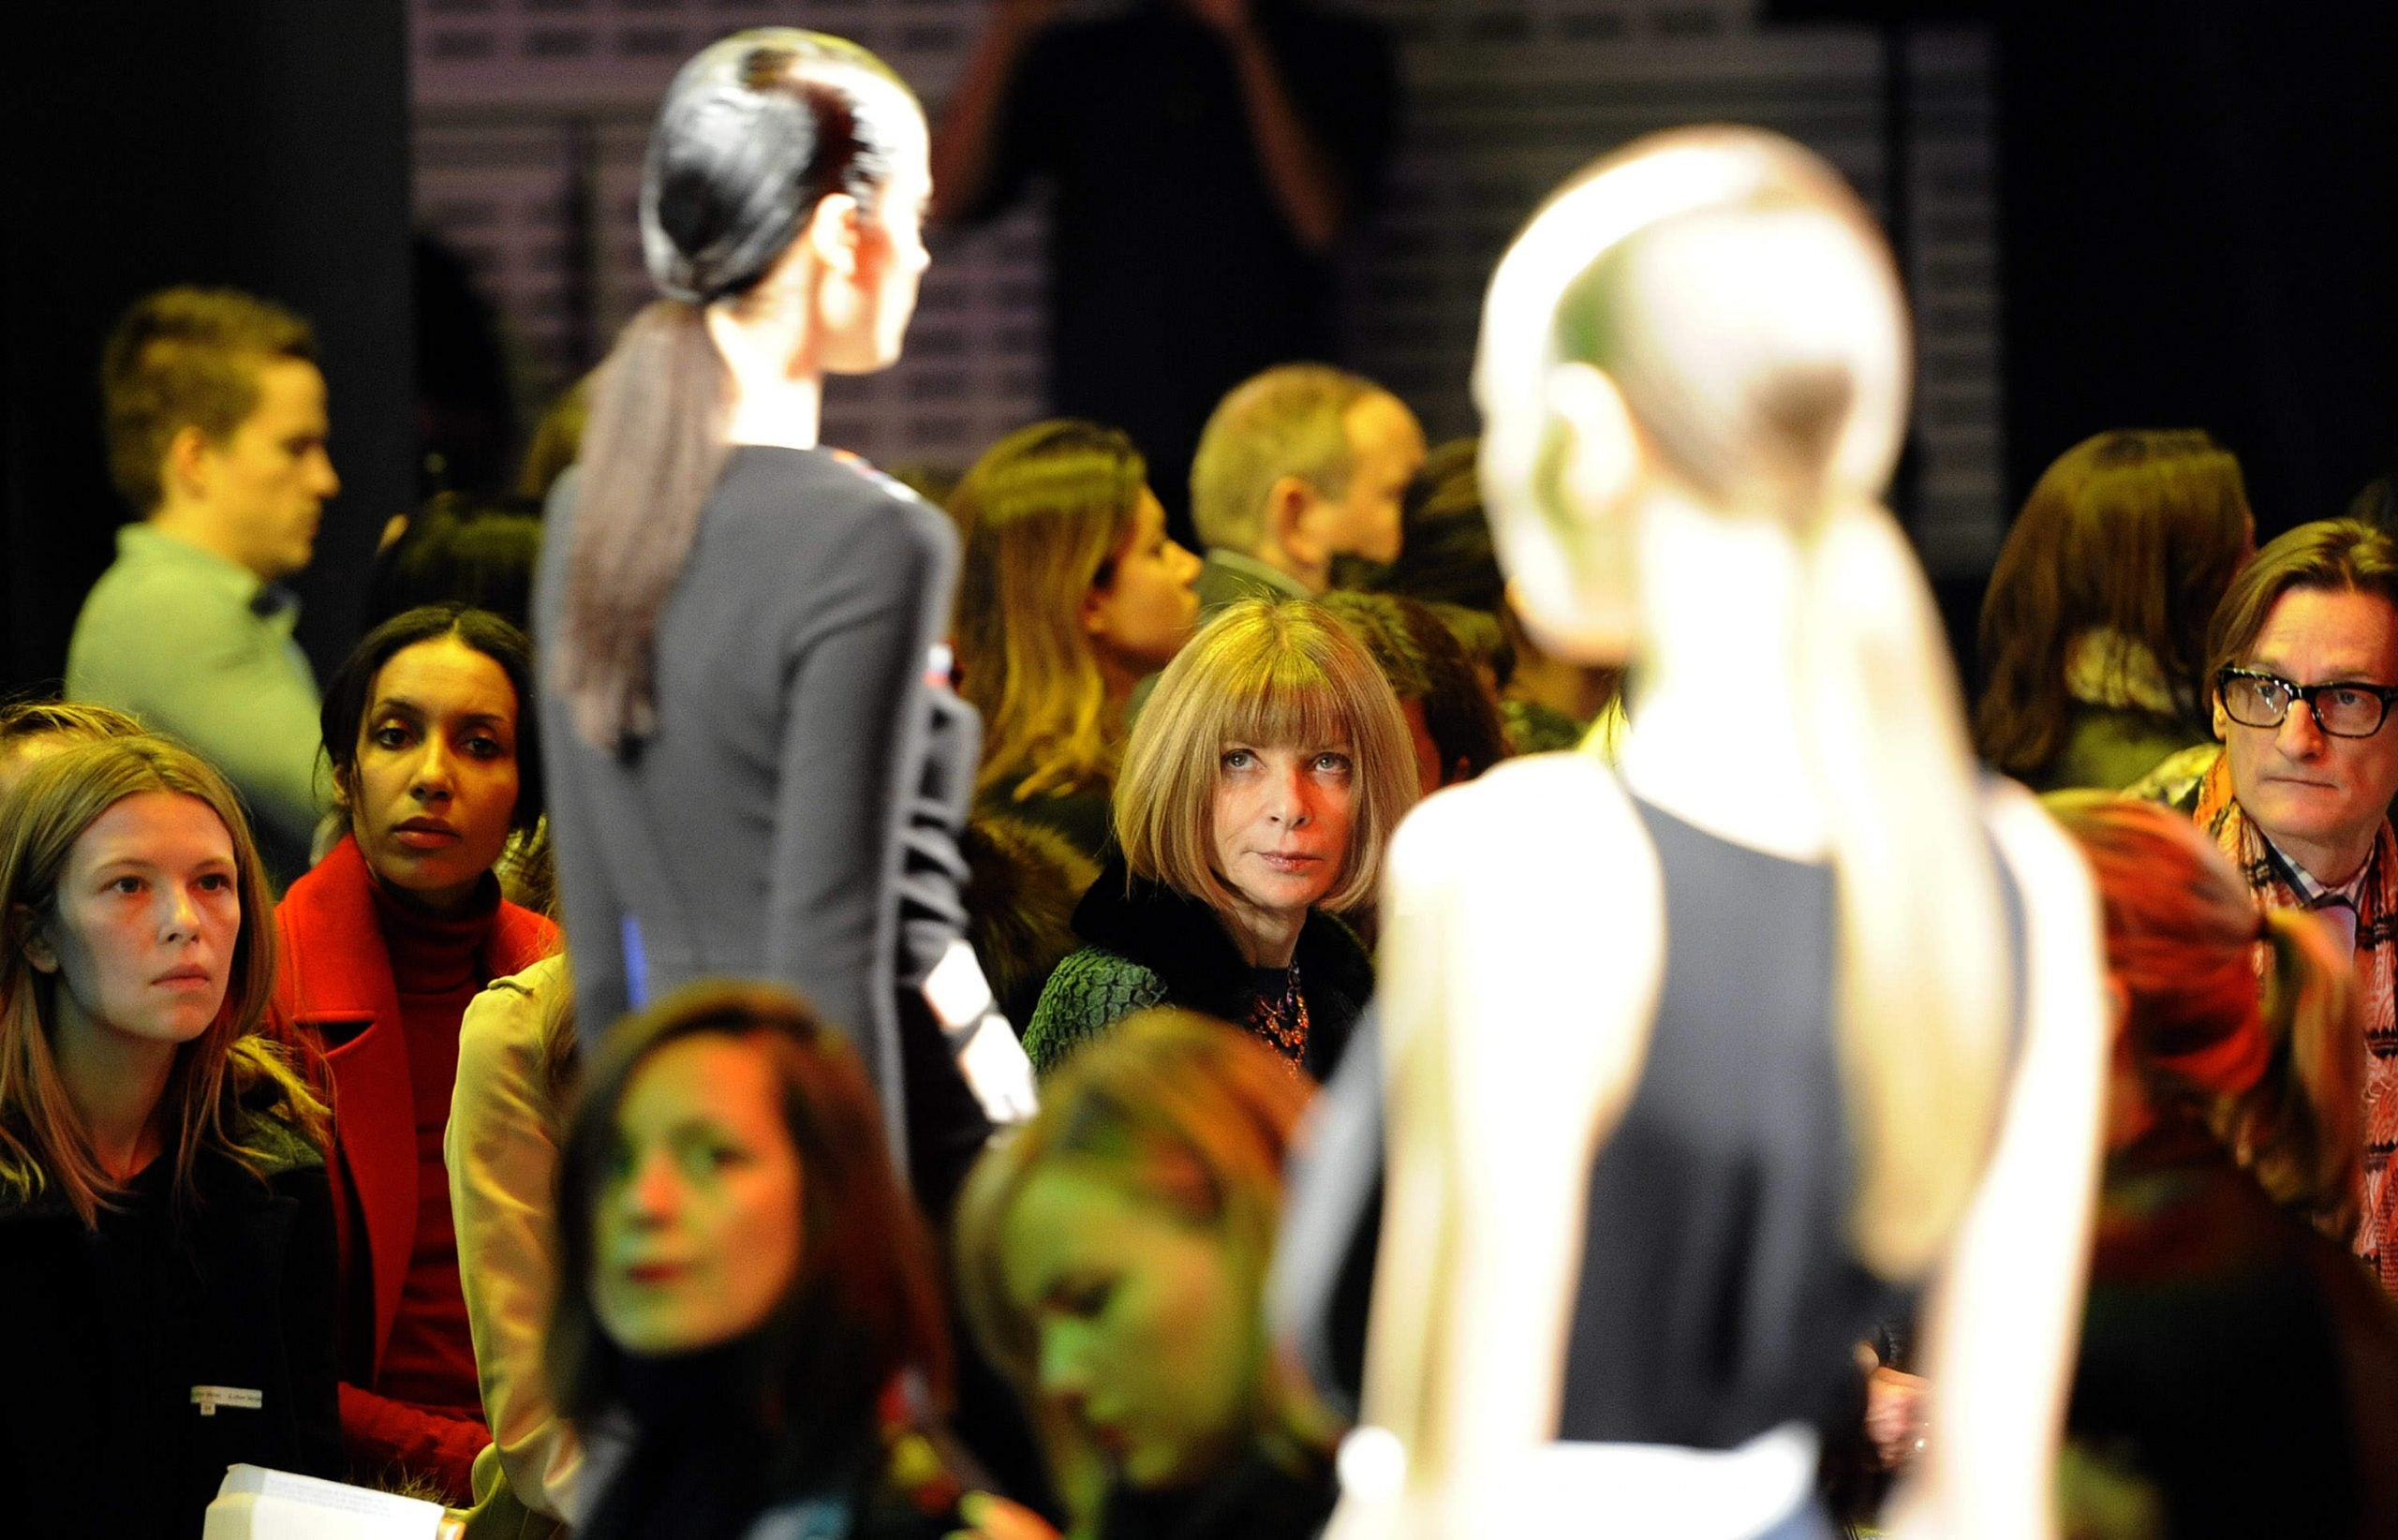 Absolutely Fashion showed what fashion week is really like: nasty, brutish and short